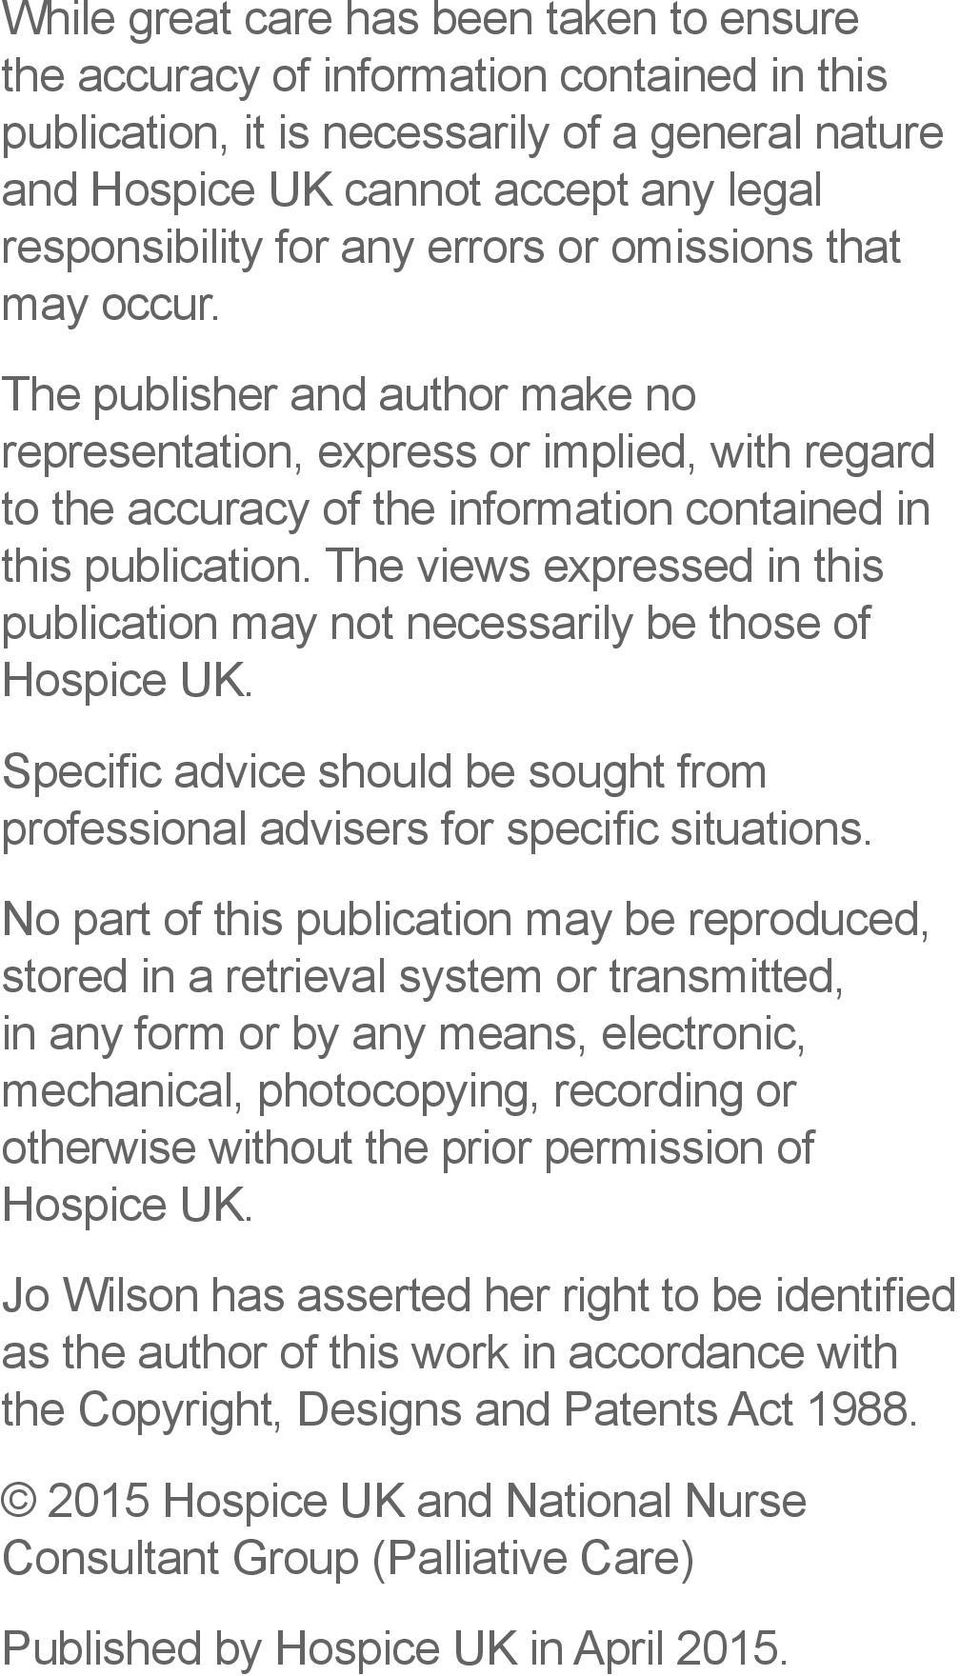 The views expressed in this publication may not necessarily be those of Hospice UK. Specific advice should be sought from professional advisers for specific situations.